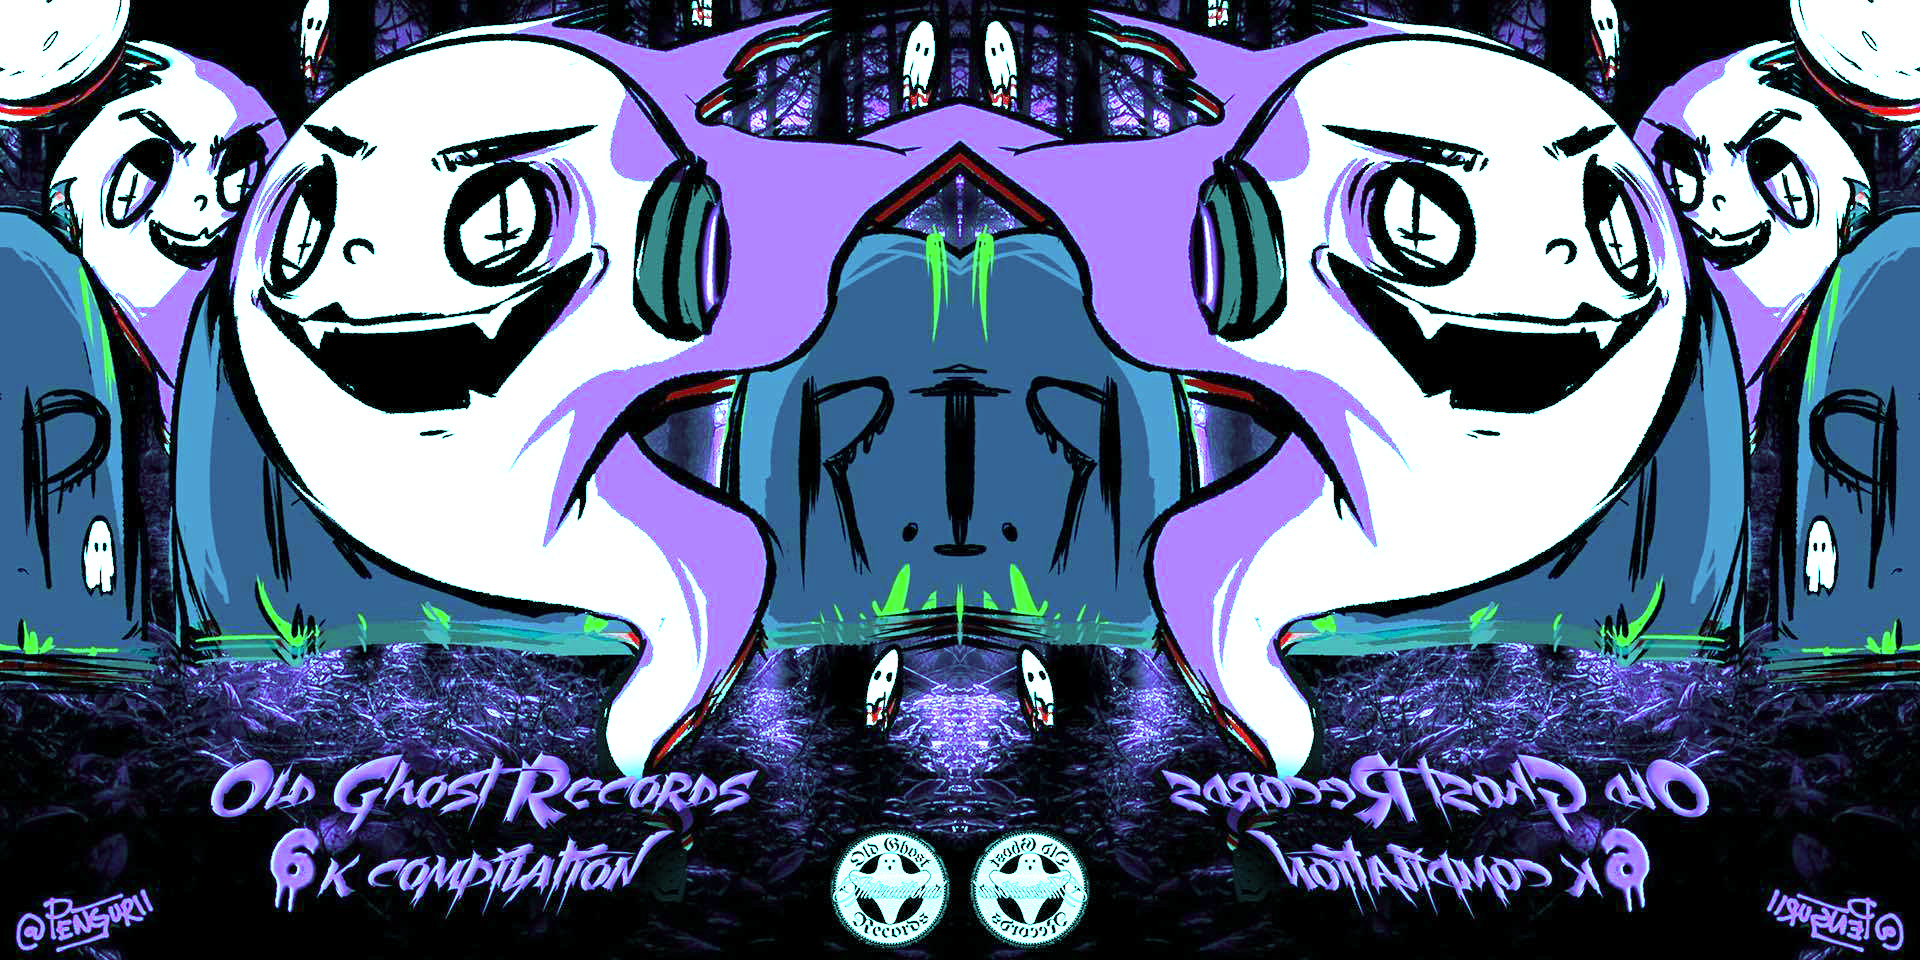 3549e36c8eb08 Old Ghost Records Hit 6000 Followers, And We're Loving this New Free ...